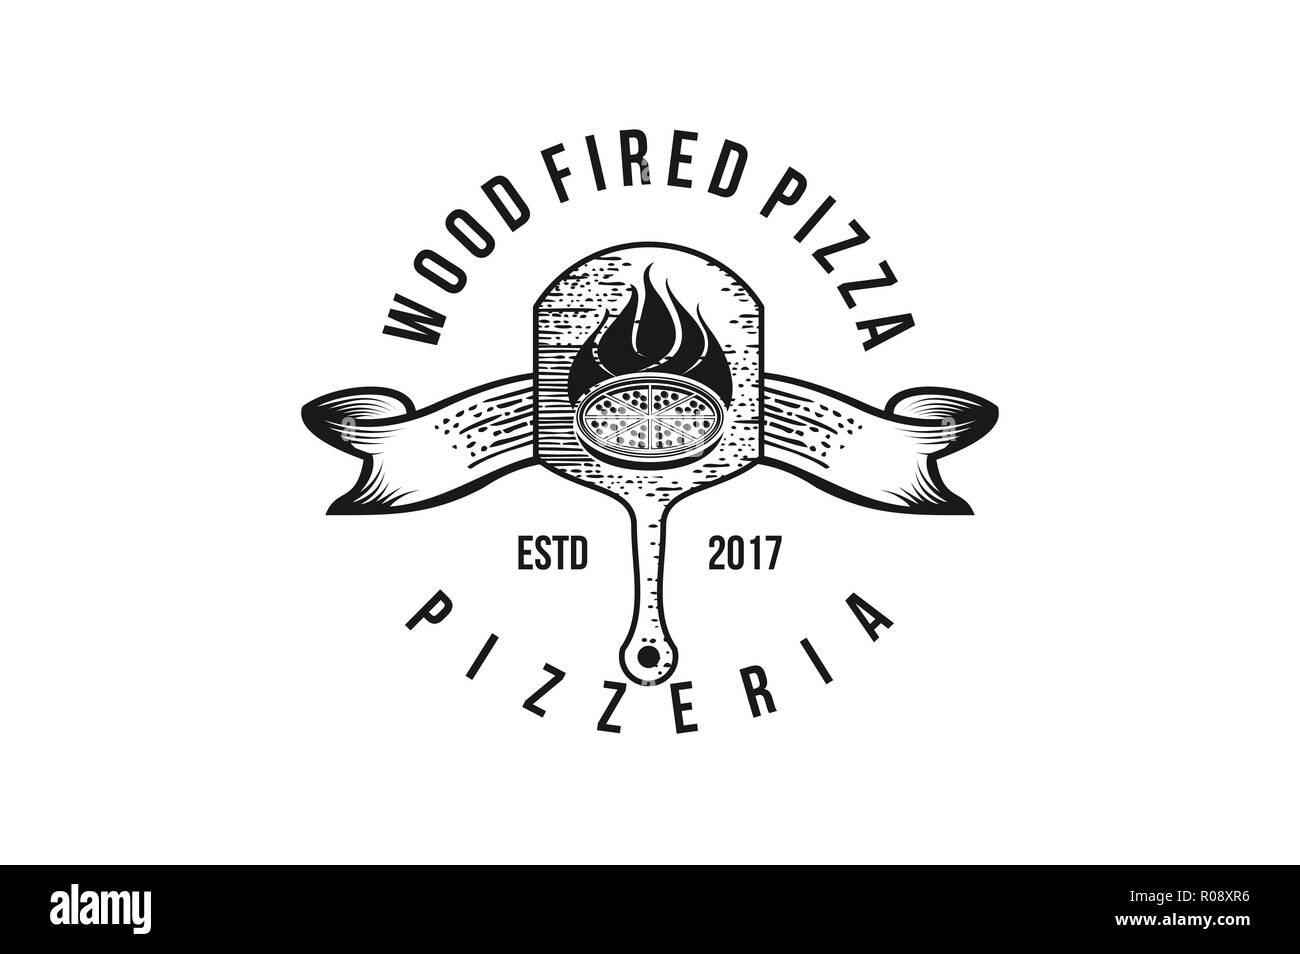 wood fired pizza classic logo design - Stock Vector